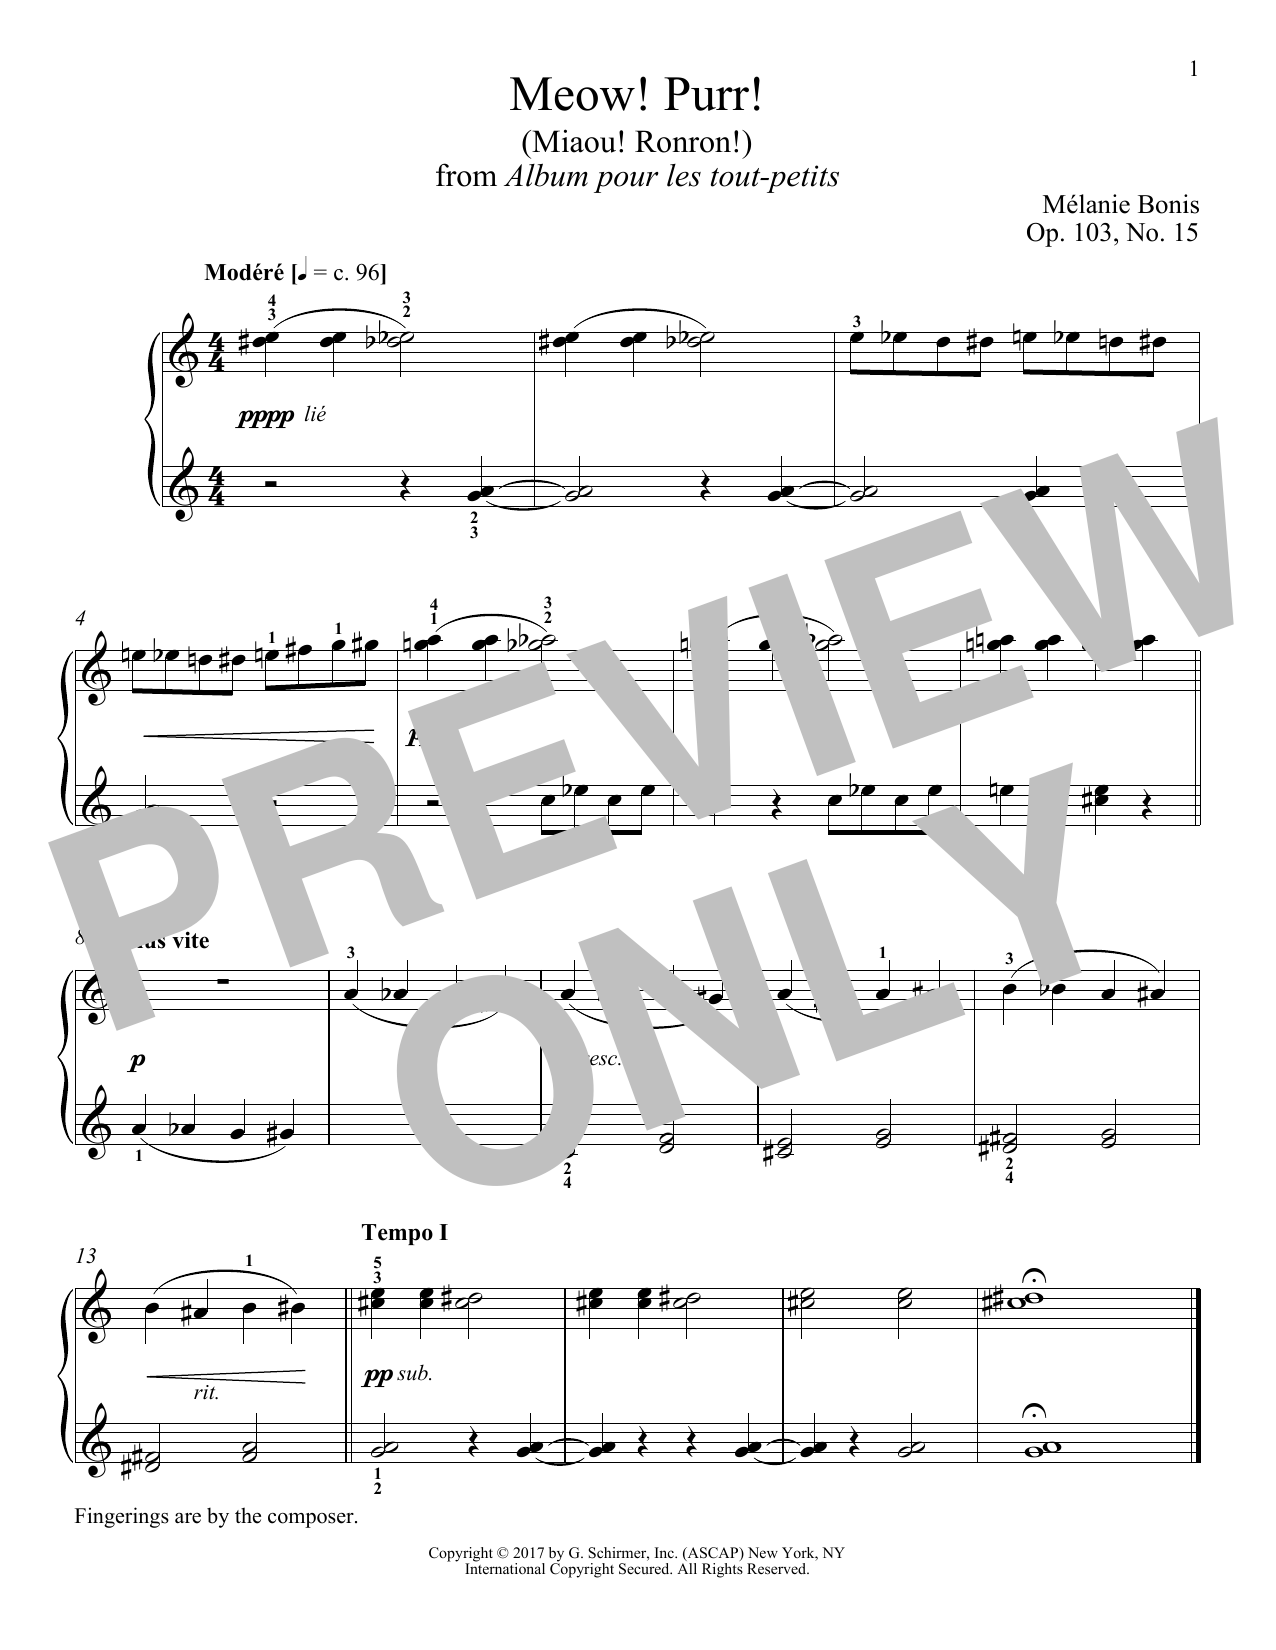 Download Melanie Bonis 'Meow! Purr! (Miaou! Ronron!)' Digital Sheet Music Notes & Chords and start playing in minutes